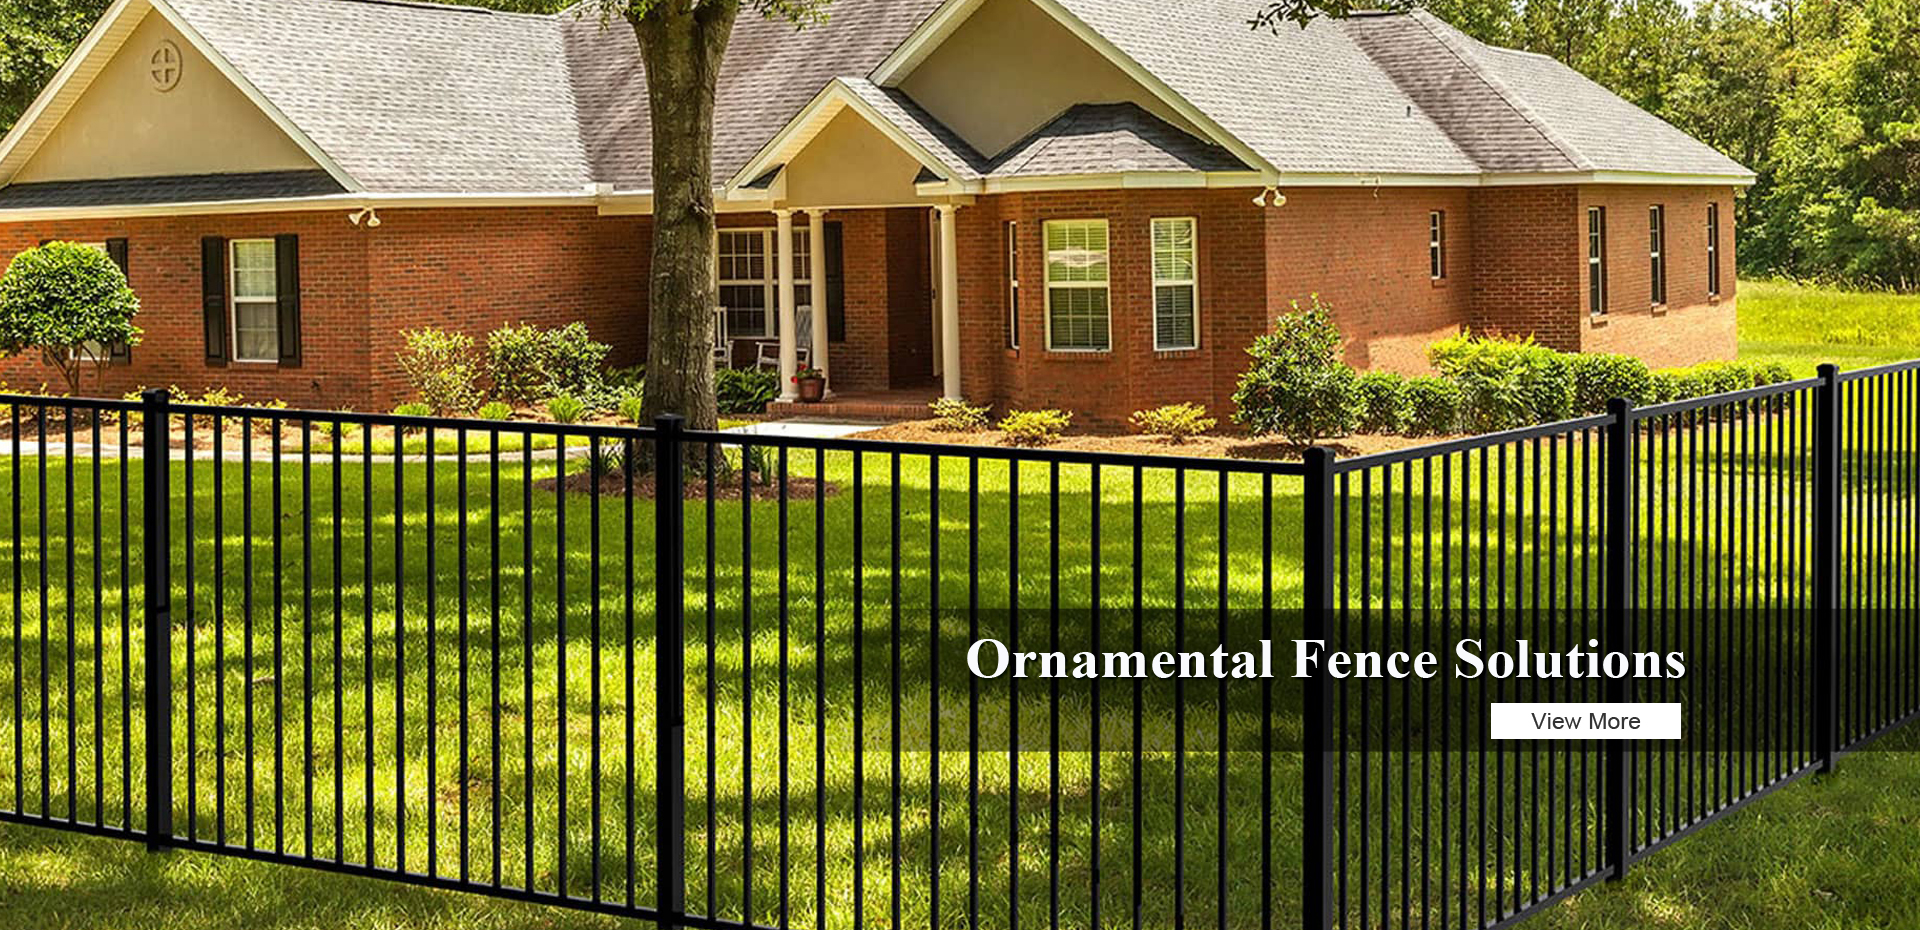 Ornamental Fence Solutions